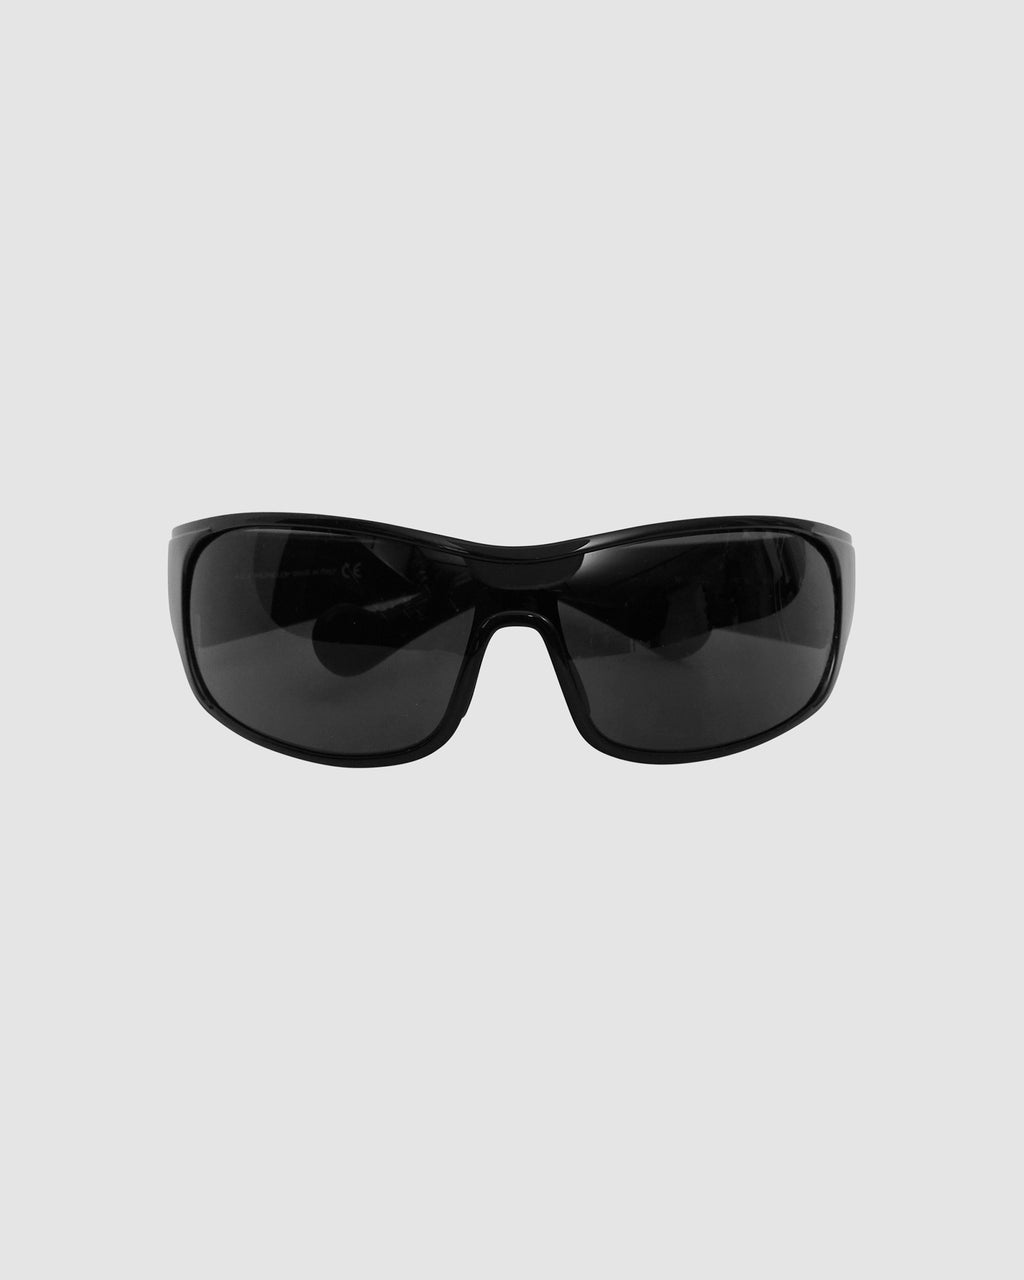 1017 ALYX 9SM | MONCLER INJECTED SUNGLASSES | SUNGLASSES | Accessories, BLACK, Google Shopping, Man, Moncler, S20, SUNGLASSES, UNISEX, Woman